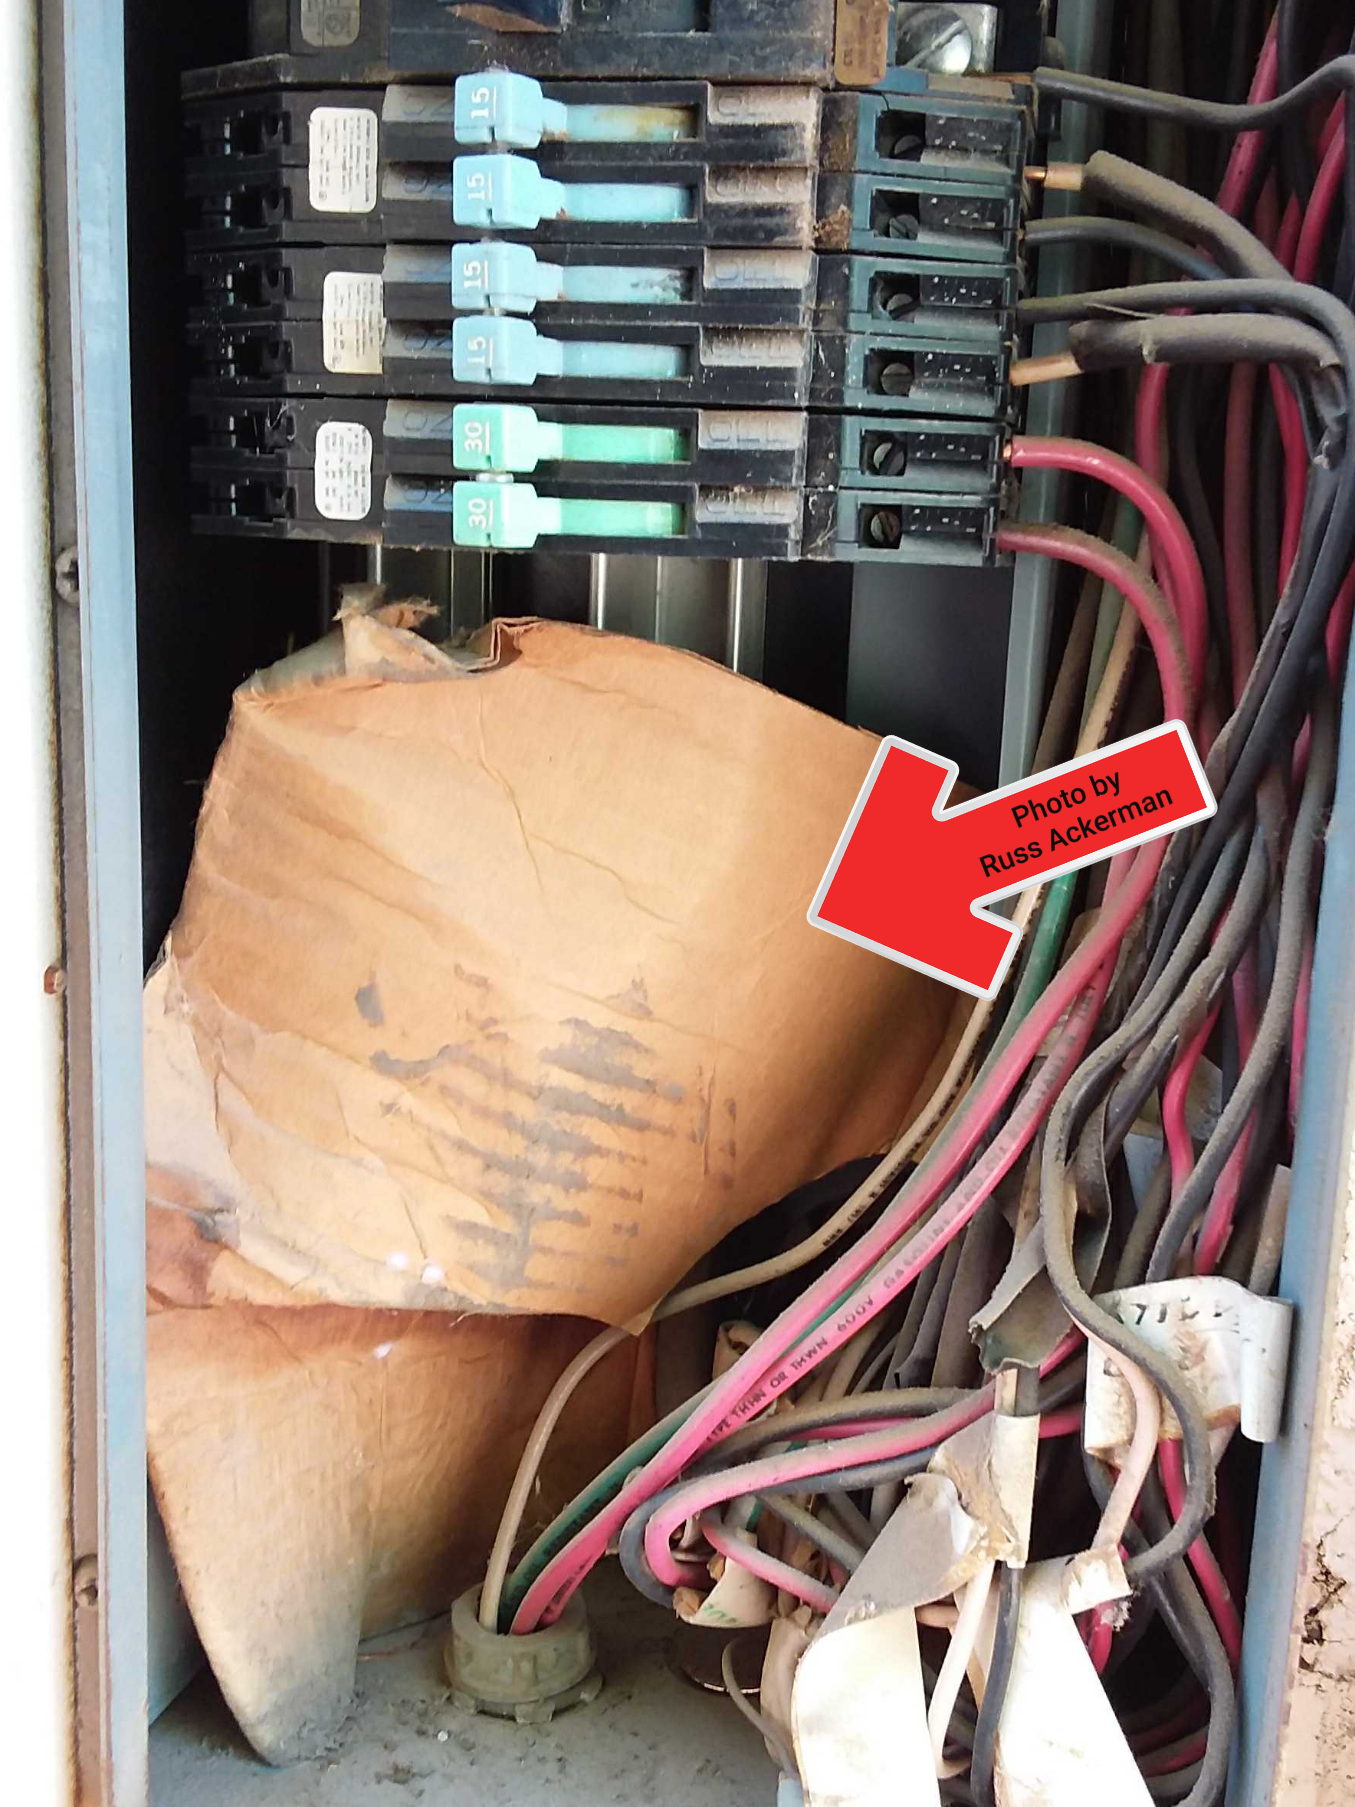 Zinsco electrical panels already have enough problems, storing flammable materials against a live bus bar is not helping anything.